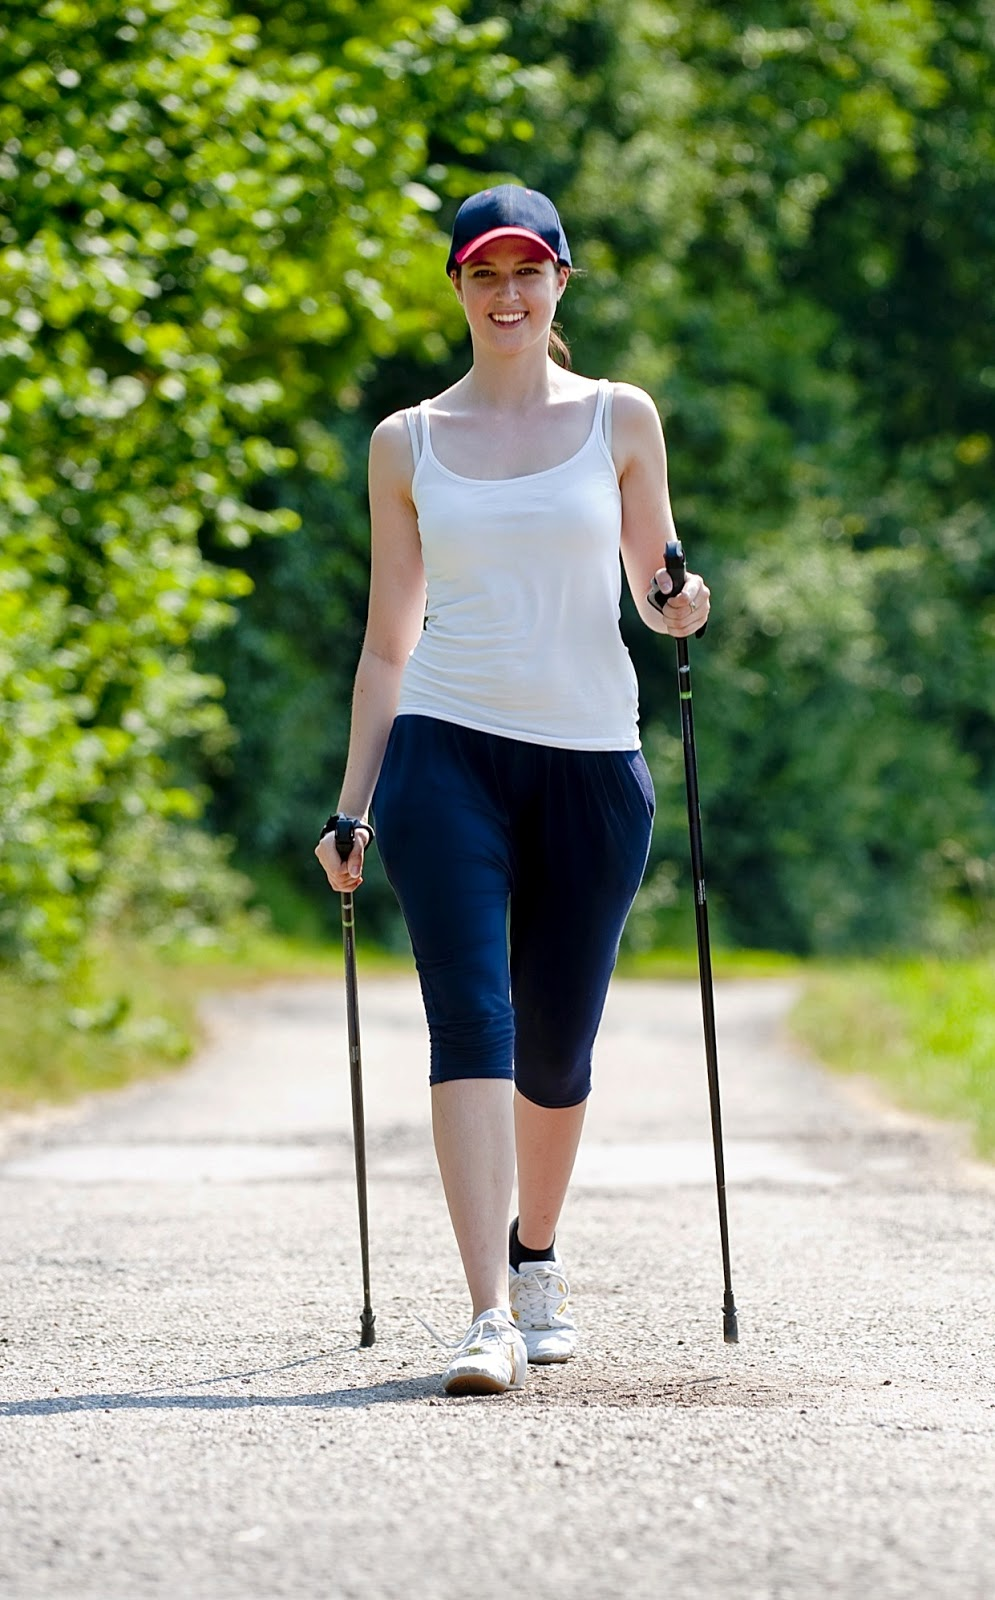 Brisk walking is a lower-impact physical activity that is easy, convenient and effective in improving health.